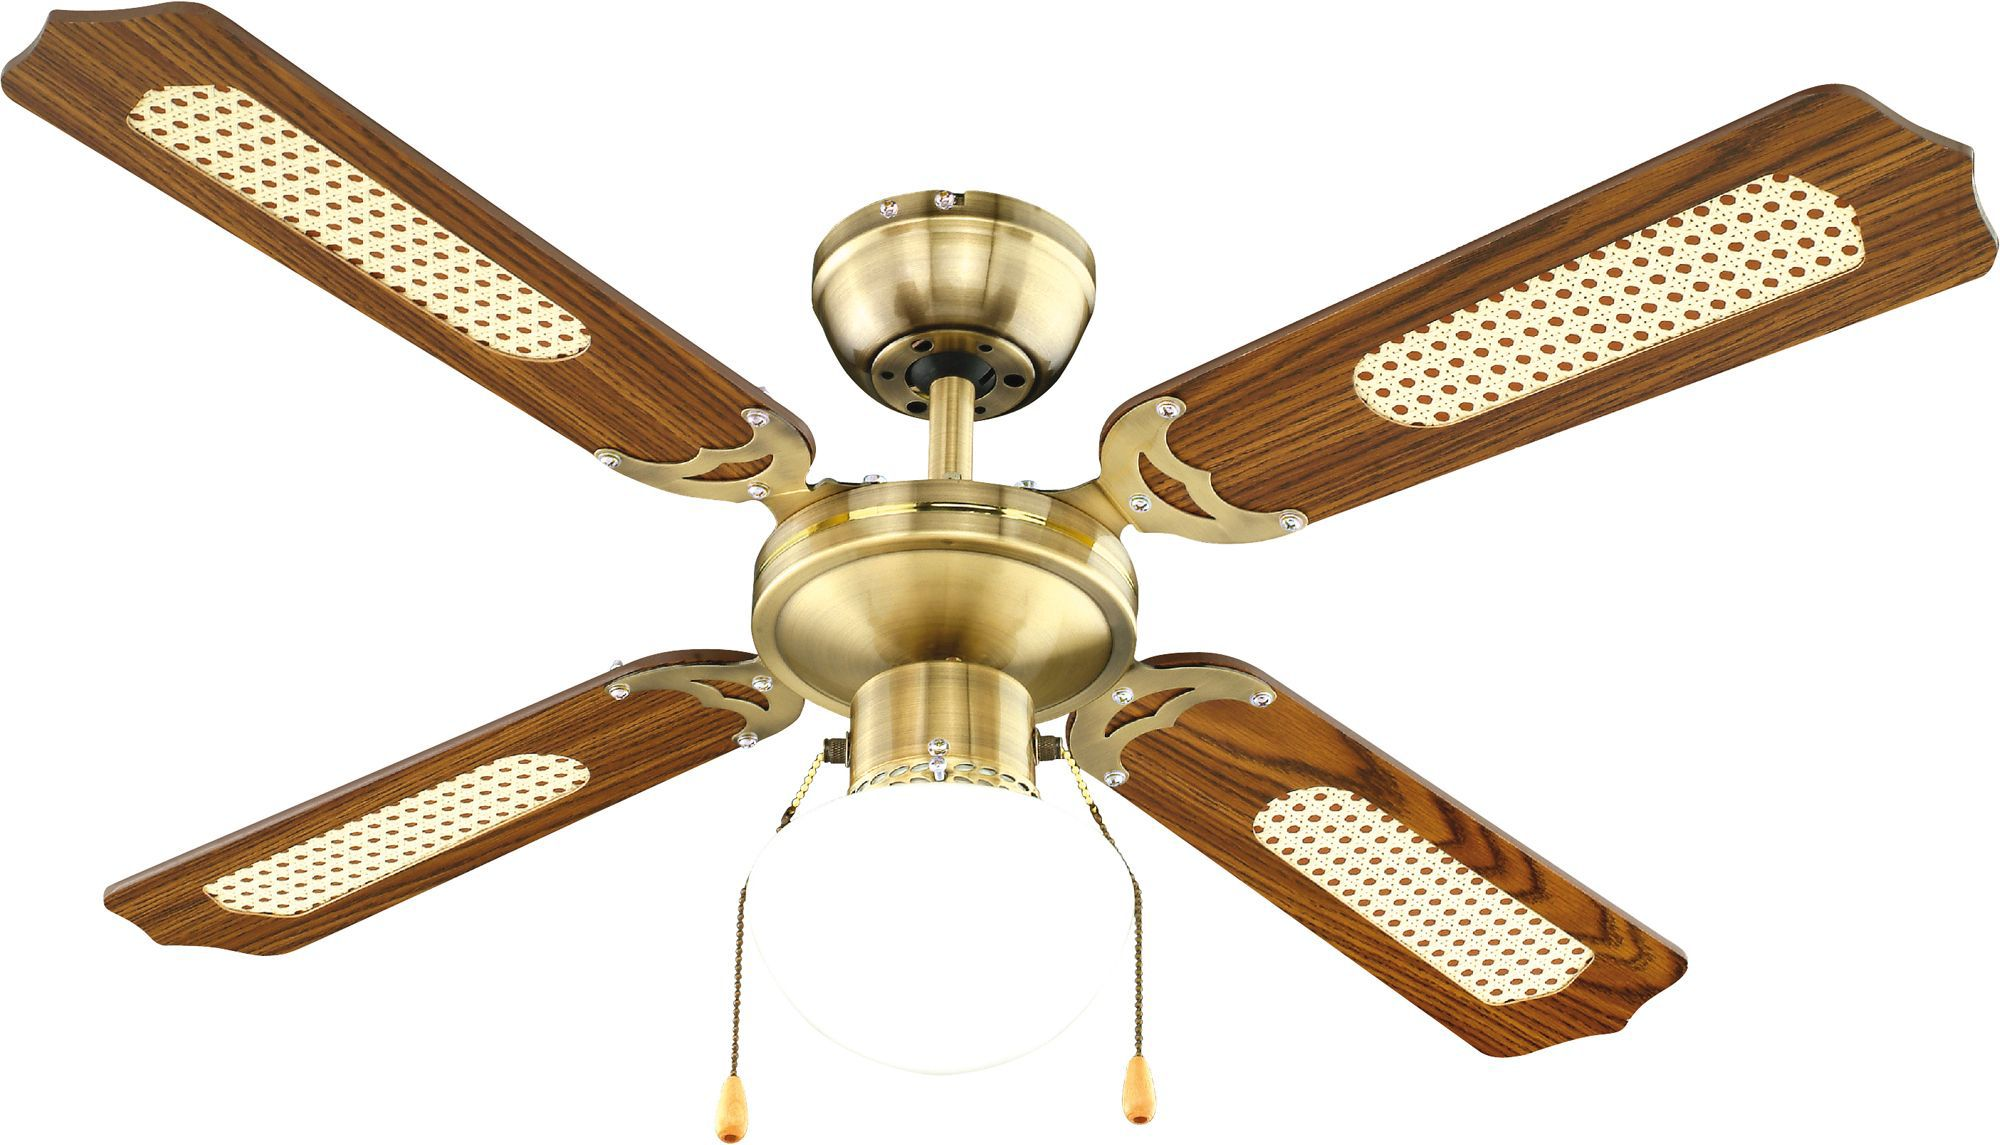 Reamington Antique Brass Effect Ceiling Fan Light